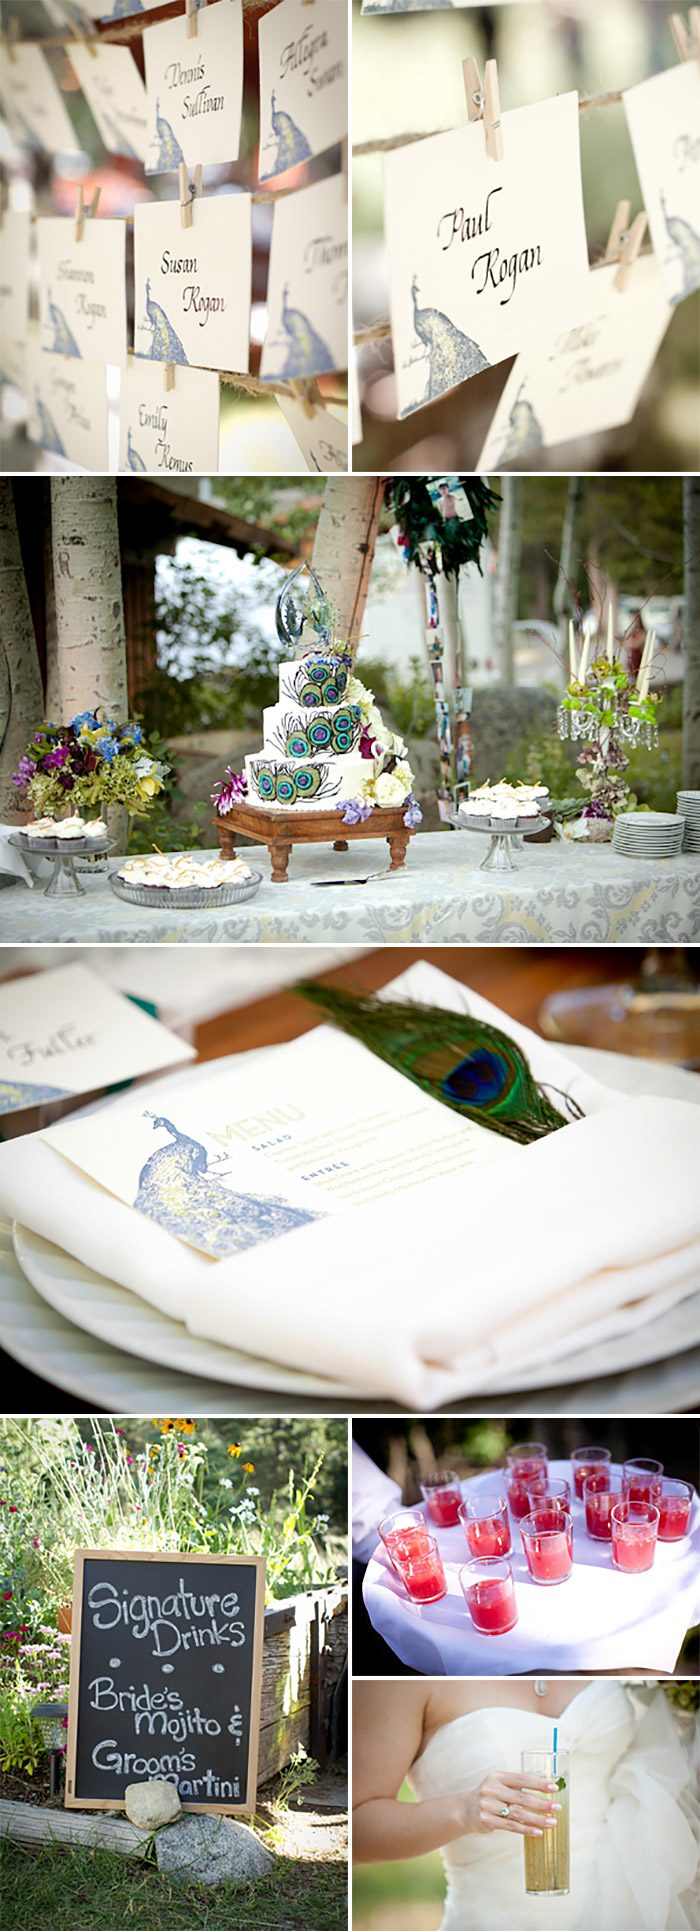 A Vintage Garden Party Wedding with letterpress peacock stationery